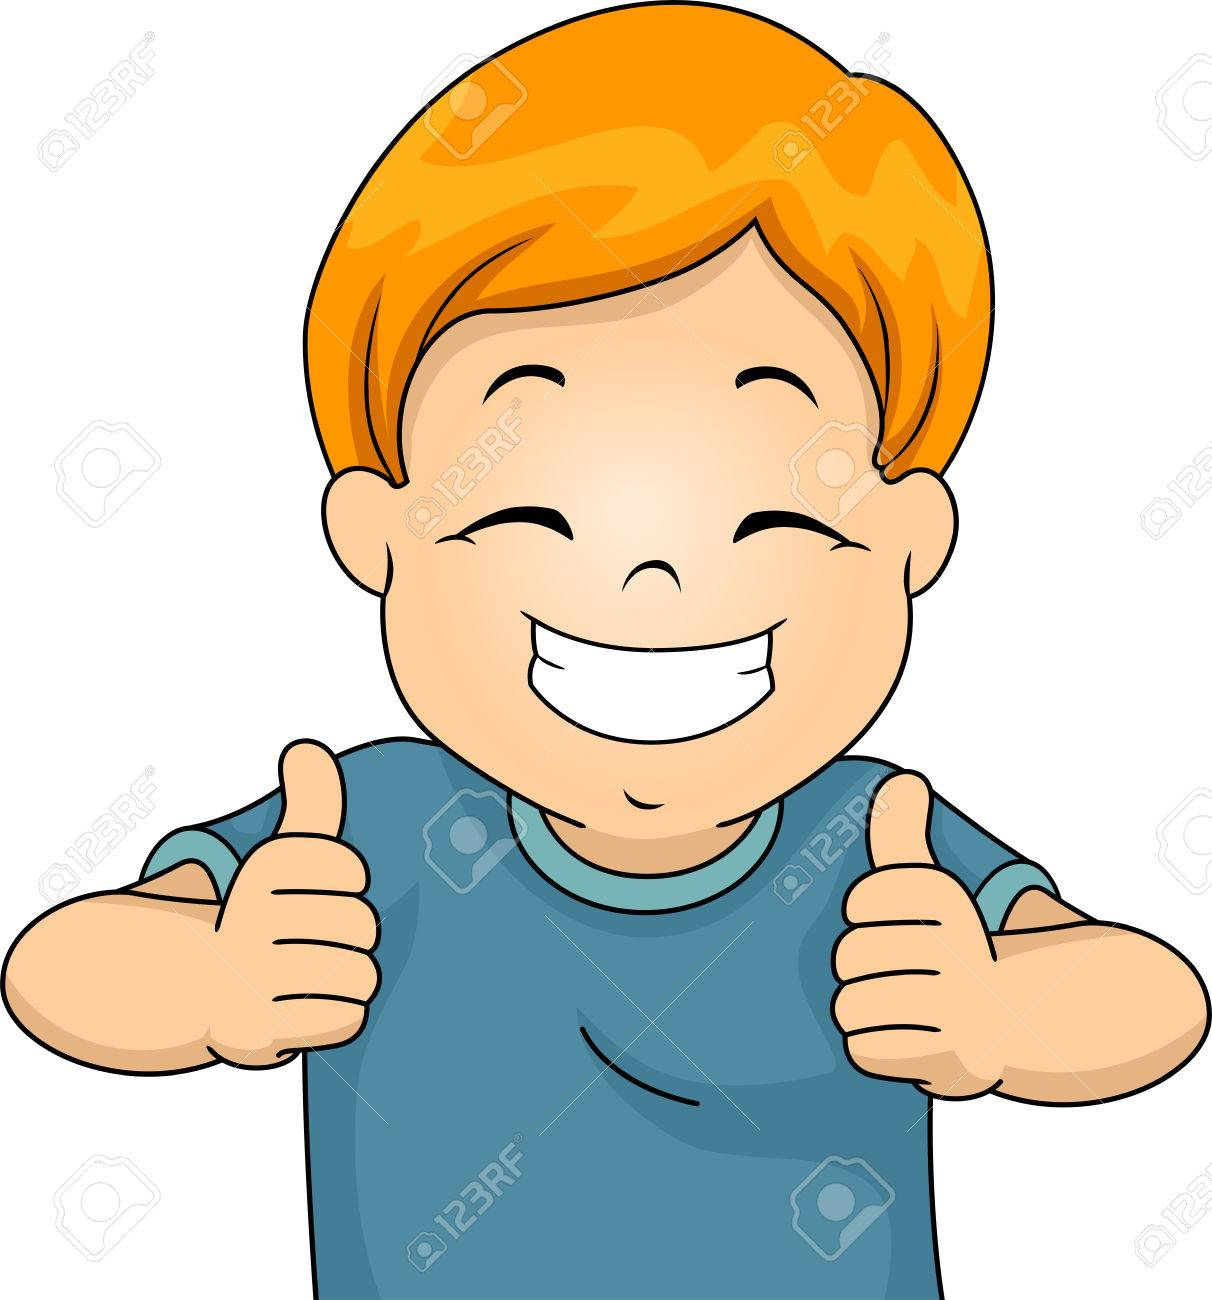 illustration of a little boy giving two thumbs up stock photo rh 123rf com